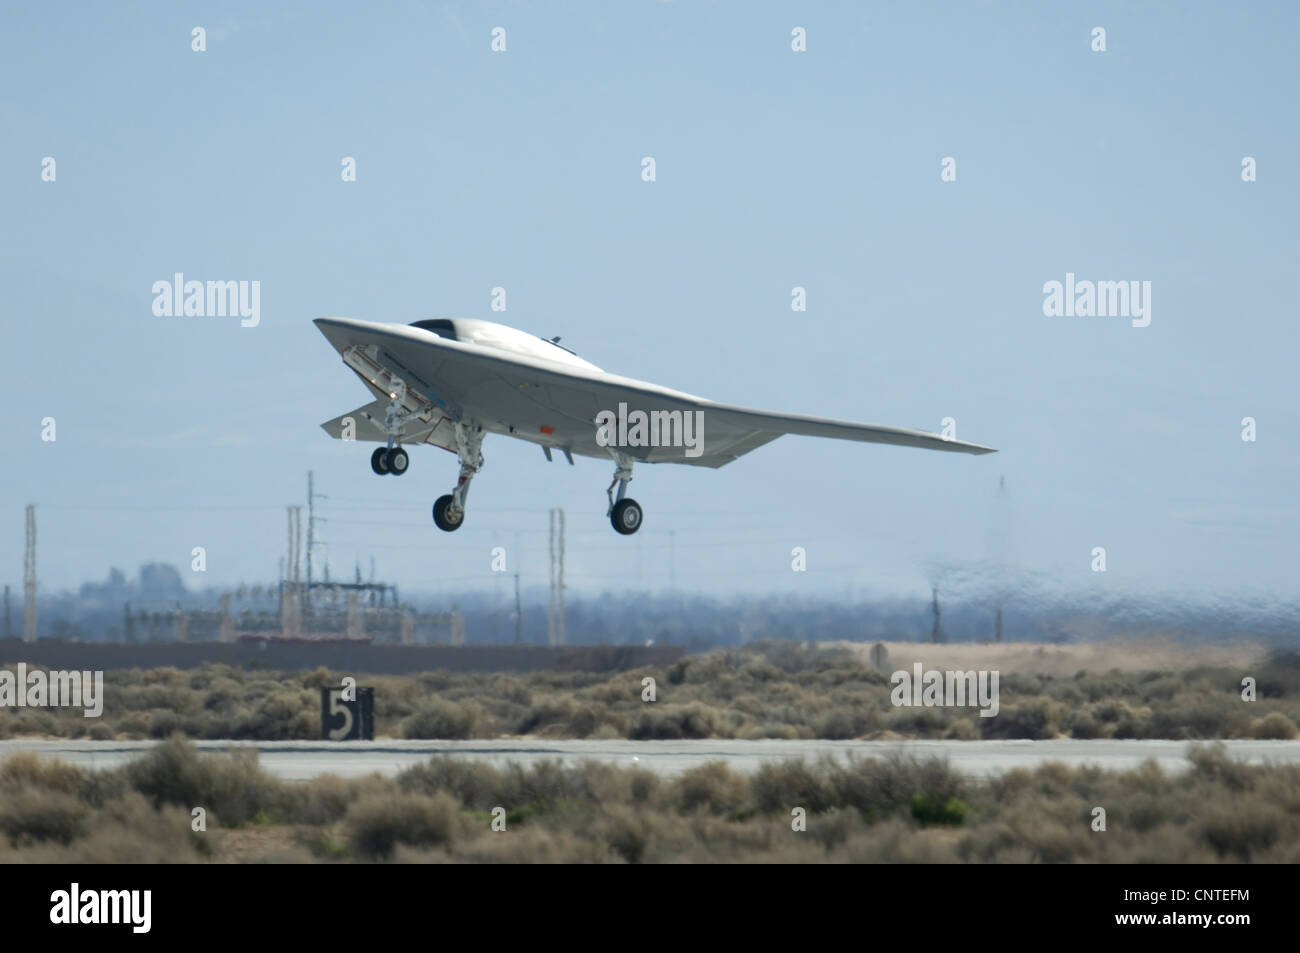 X-47B next generation unmanned aerial drone inflight February 4, 2010 at Edwards Air Force Base, CA. - Stock Image